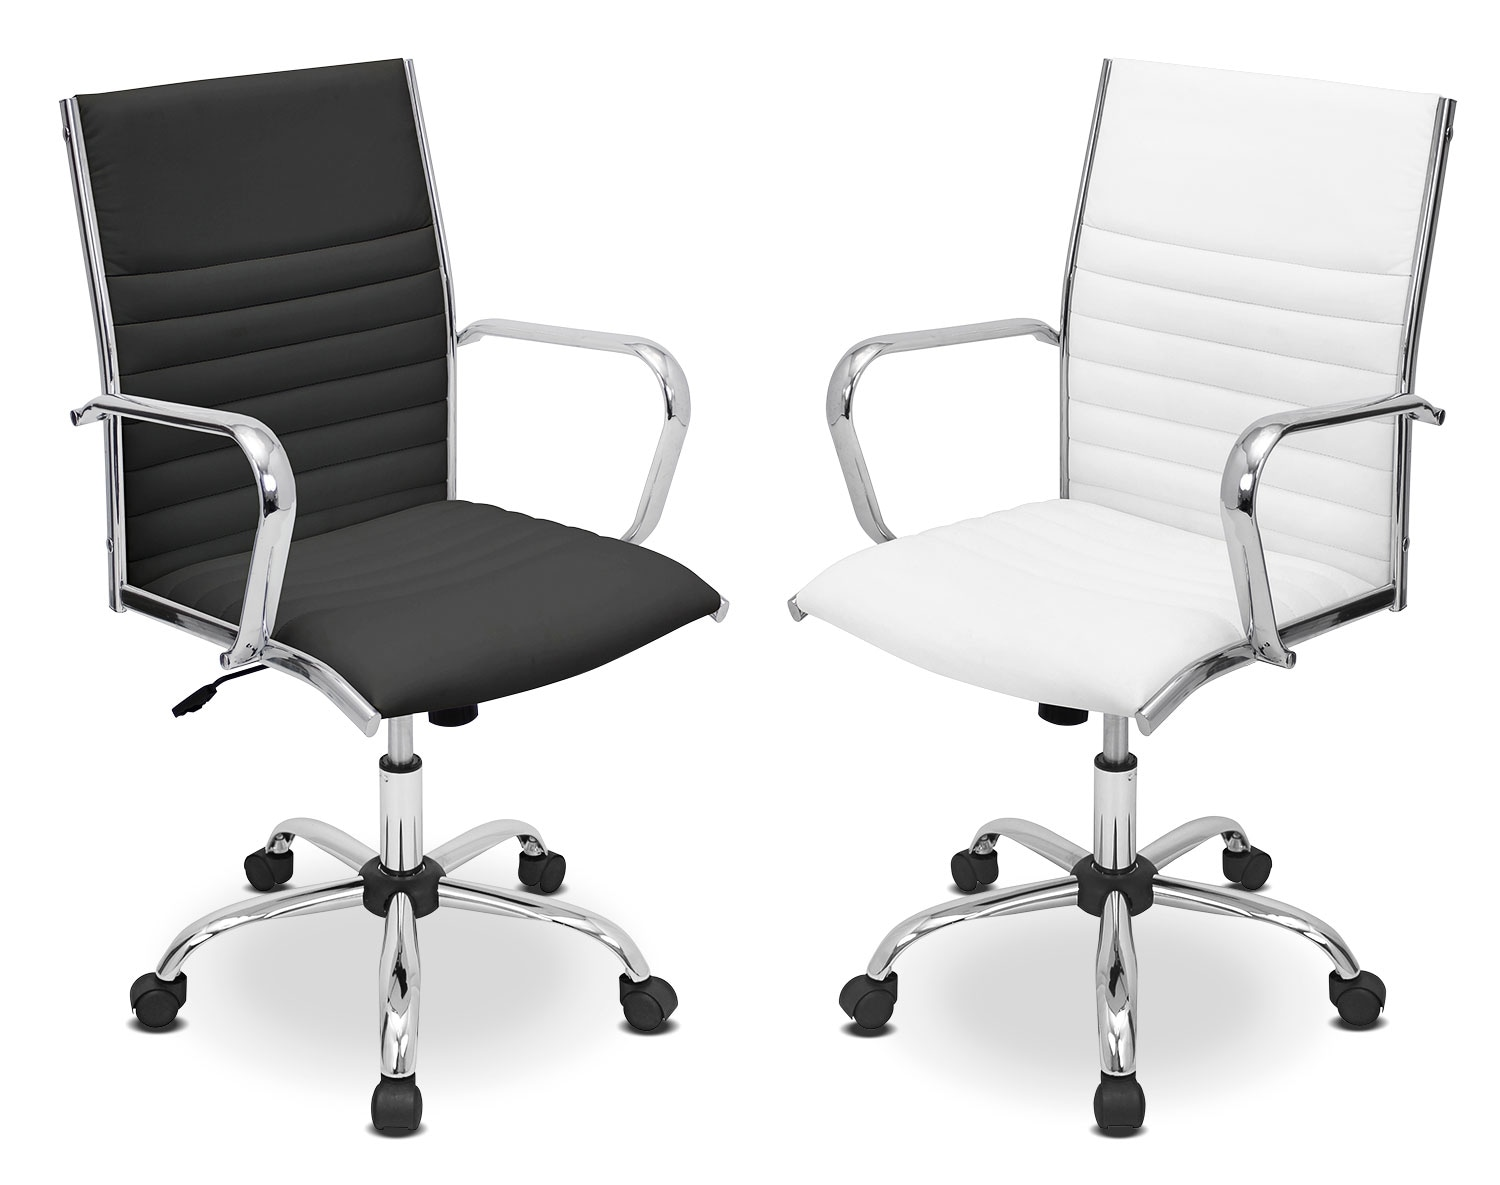 The Director Office Chair Collection